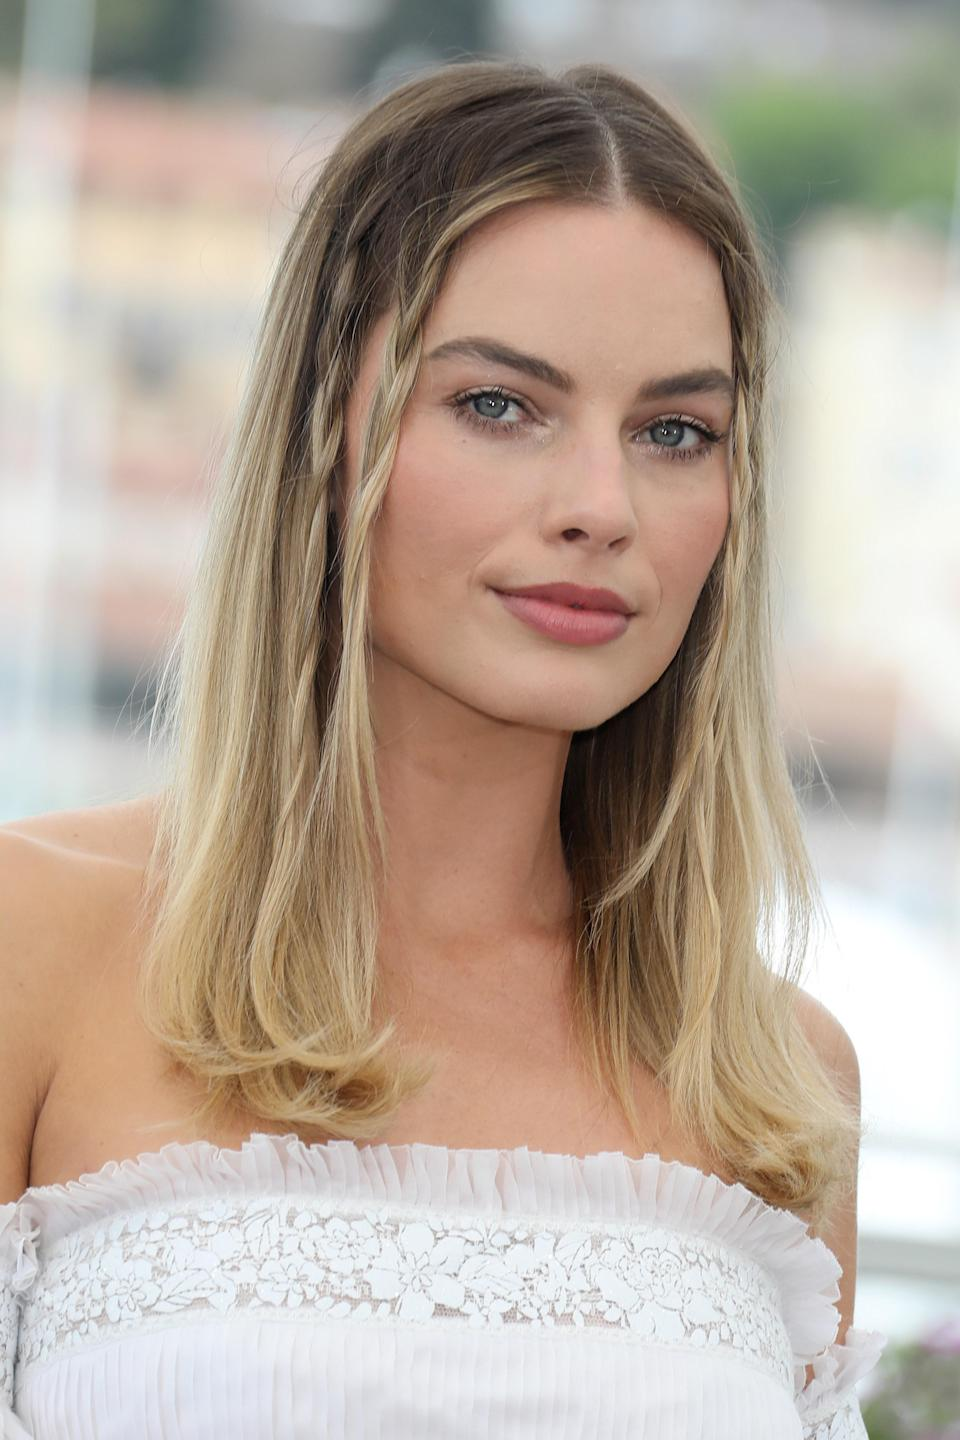 """Multiple braids like Margot Robbie's, here, have a more '70s feel, or you can go for just one on each side for '90s vibes. Moroccanoil celebrity stylist <a href=""""https://www.thewallgroup.com/artist/bryce-scarlett"""" rel=""""nofollow noopener"""" target=""""_blank"""" data-ylk=""""slk:Bryce Scarlett"""" class=""""link rapid-noclick-resp"""">Bryce Scarlett</a>, who did this Sharon Tate–inspired look on Robbie, says the key to keeping it current is by not being too precious with the style. To get a similar look at home, skip the hair tie, and saturate the end of your braids with hairspray (he likes <a href=""""https://shop-links.co/1709290983046944131"""" rel=""""nofollow noopener"""" target=""""_blank"""" data-ylk=""""slk:Moroccanoil Luminous Hairspray Strong"""" class=""""link rapid-noclick-resp"""">Moroccanoil Luminous Hairspray Strong</a>). Clip the ends while the hairspray is drying (<a href=""""https://shop-links.co/1710323835641021551"""" rel=""""nofollow noopener"""" target=""""_blank"""" data-ylk=""""slk:setting clips like these work best"""" class=""""link rapid-noclick-resp"""">setting clips like these work best</a>), and then remove them right before you head out the door."""